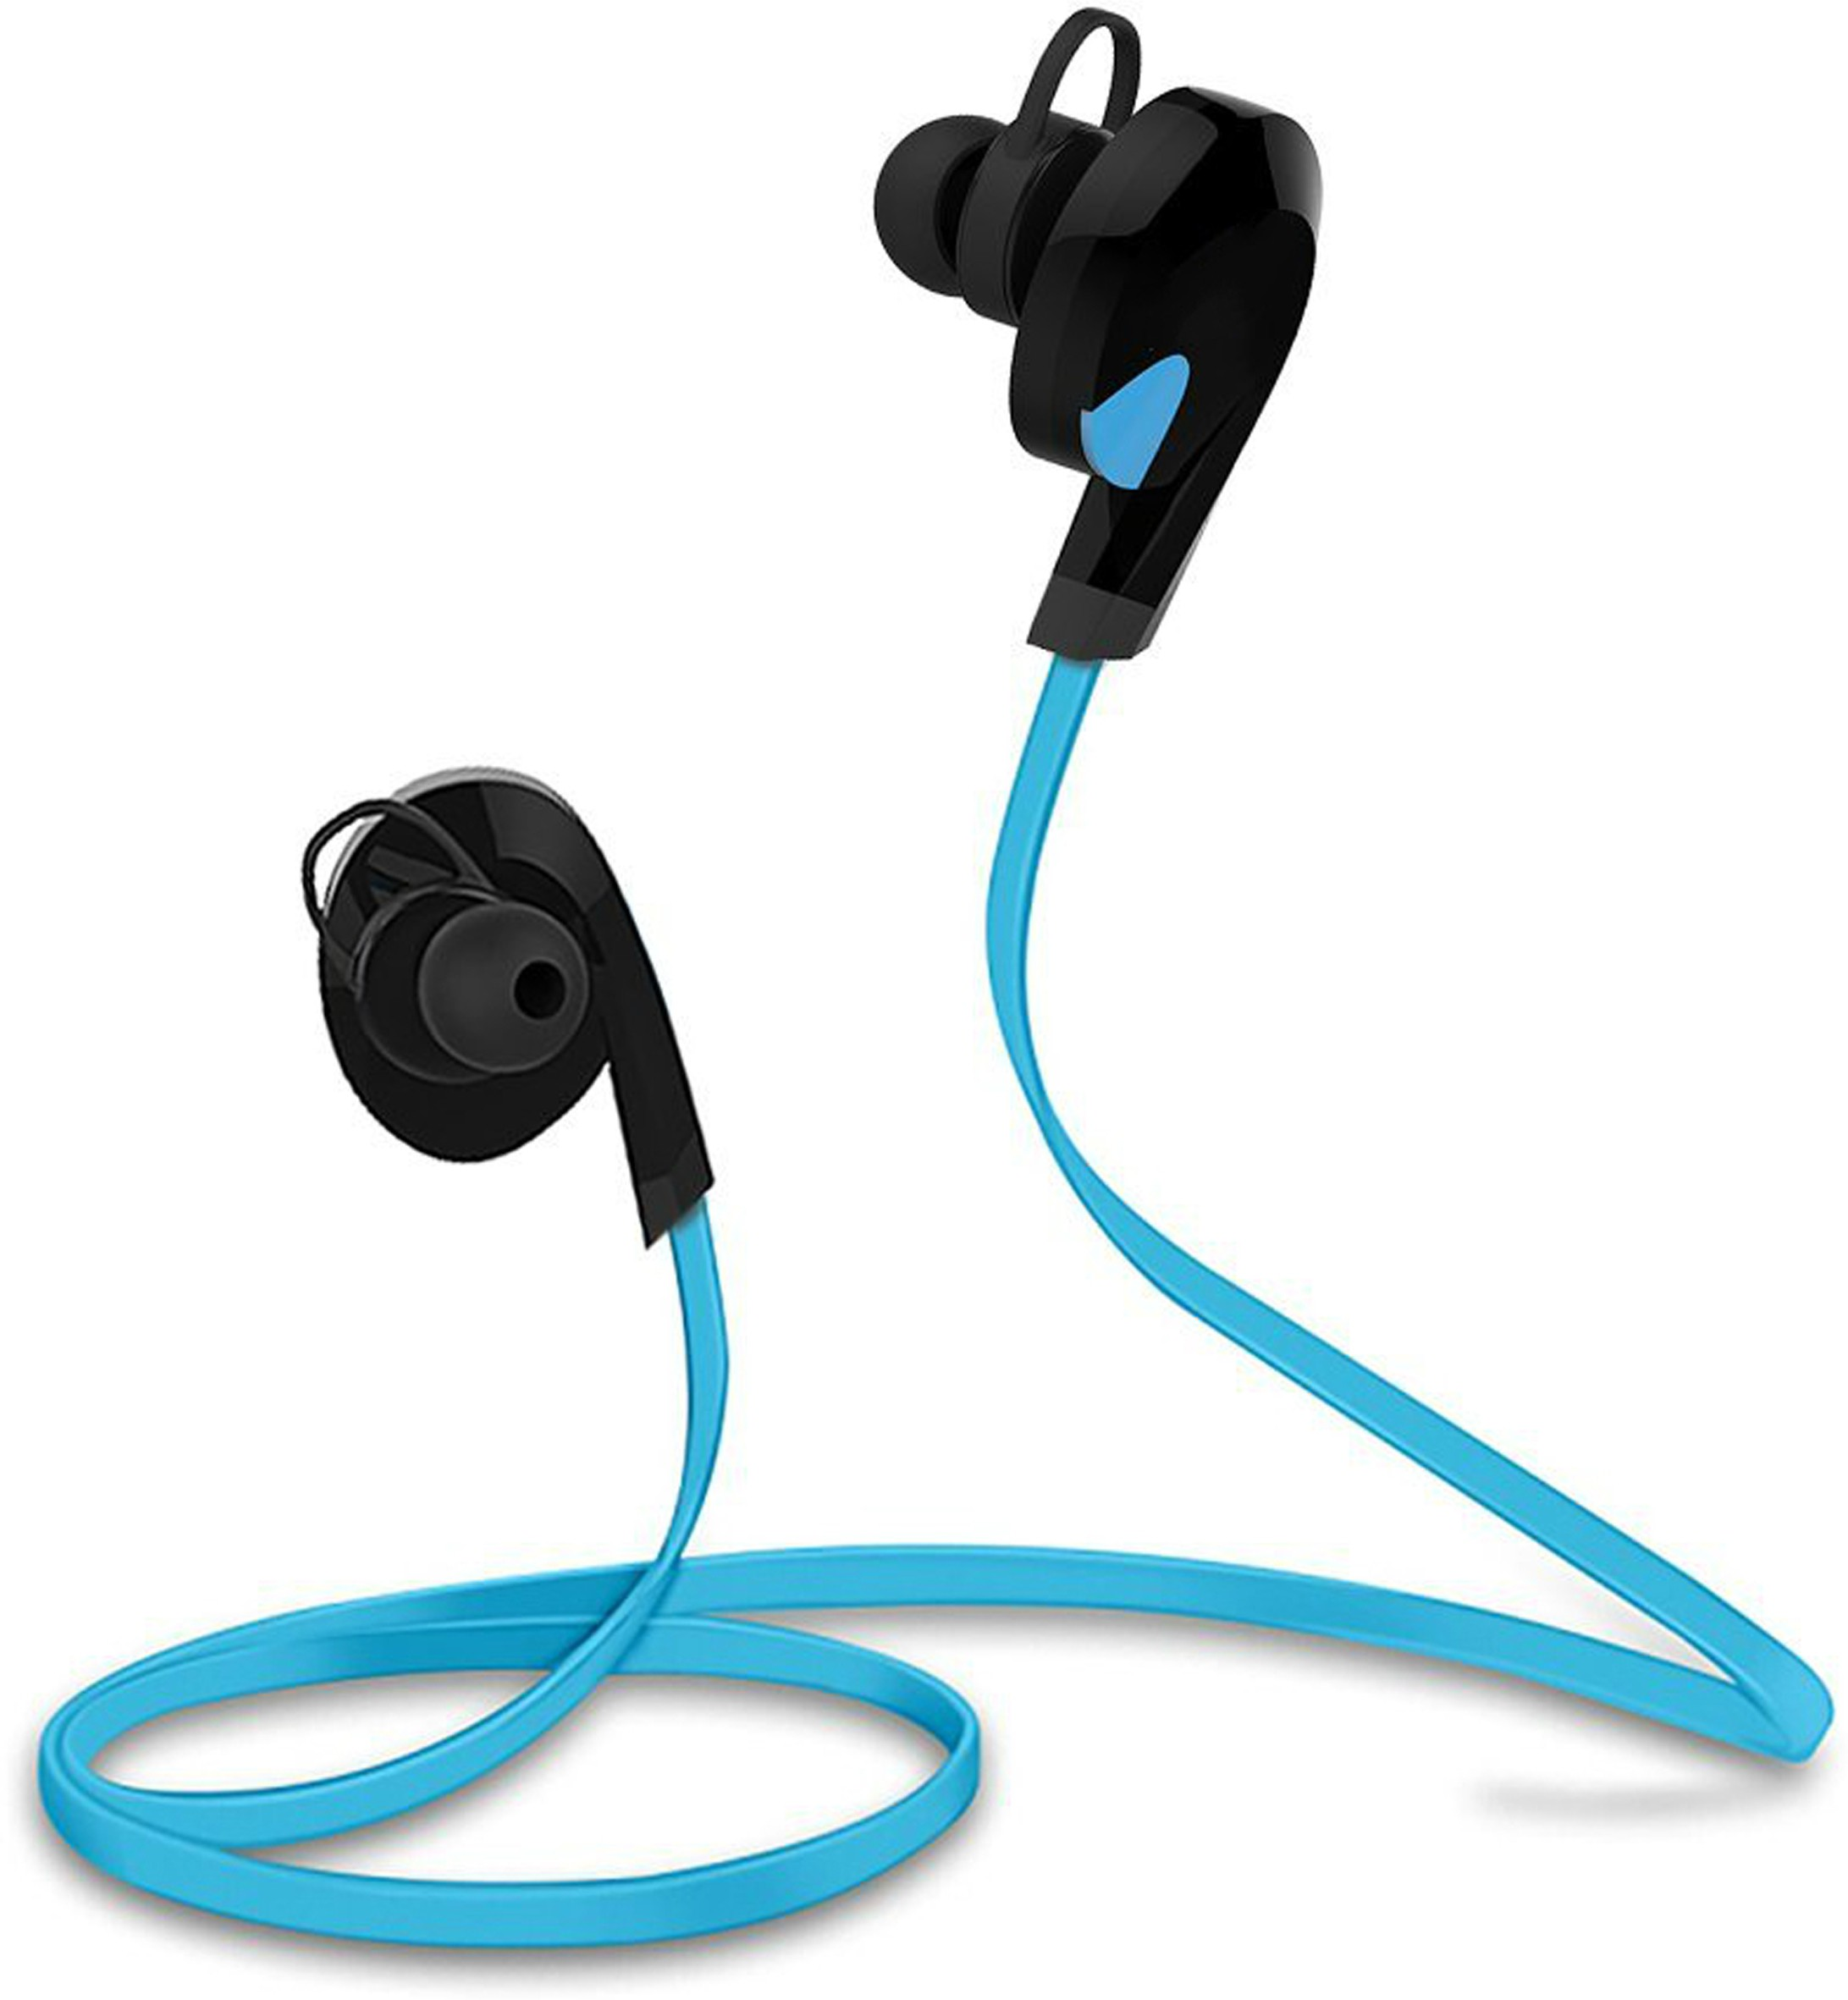 Deals - Delhi - Wireless Headphone <br> Sony, Skullcandy..<br> Category - mobiles_and_accessories<br> Business - Flipkart.com